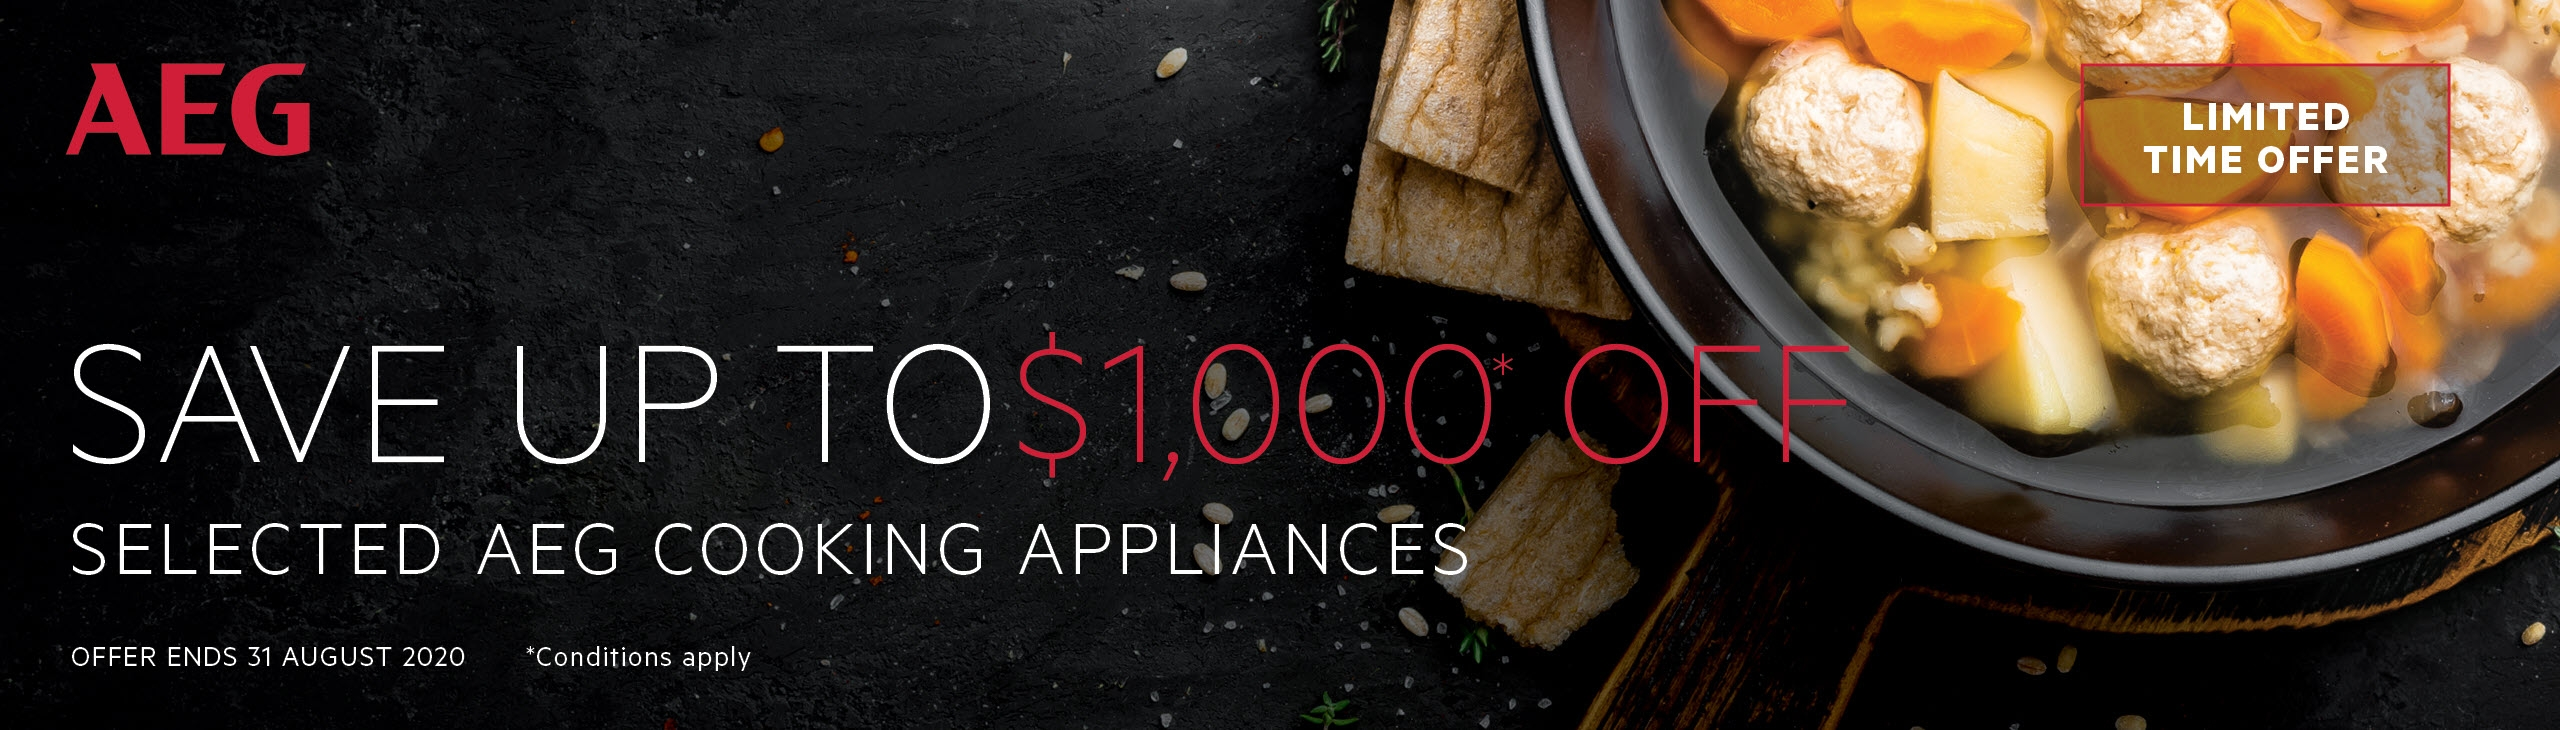 AEG Save up to $1000 On Selected AEG Kitchen Appliances July Aug 2020